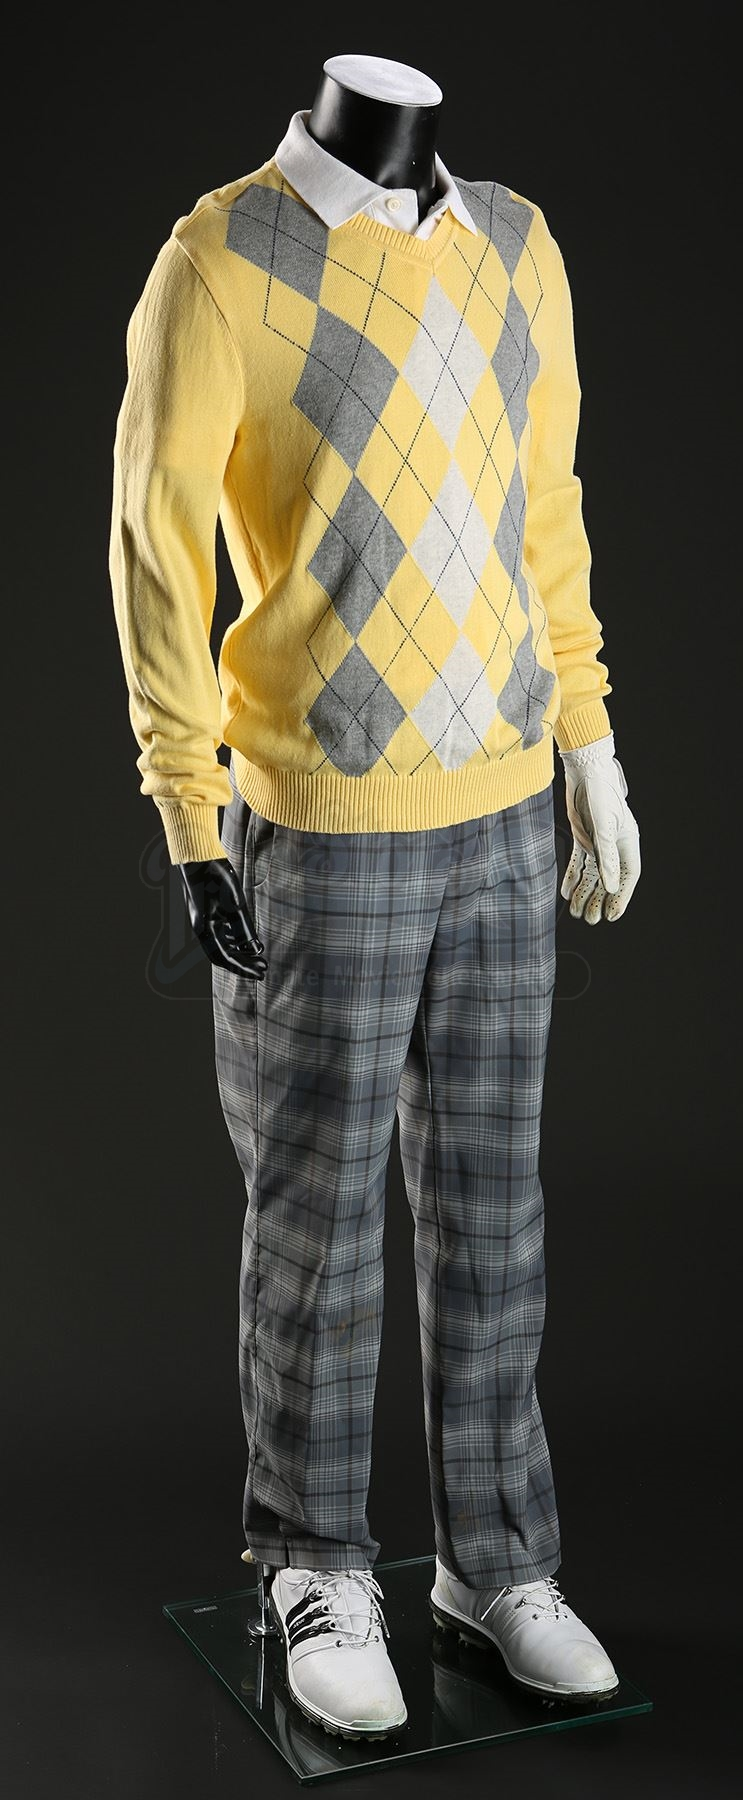 Jason Kellys Zac Efron Golf Outfit Current Price 500